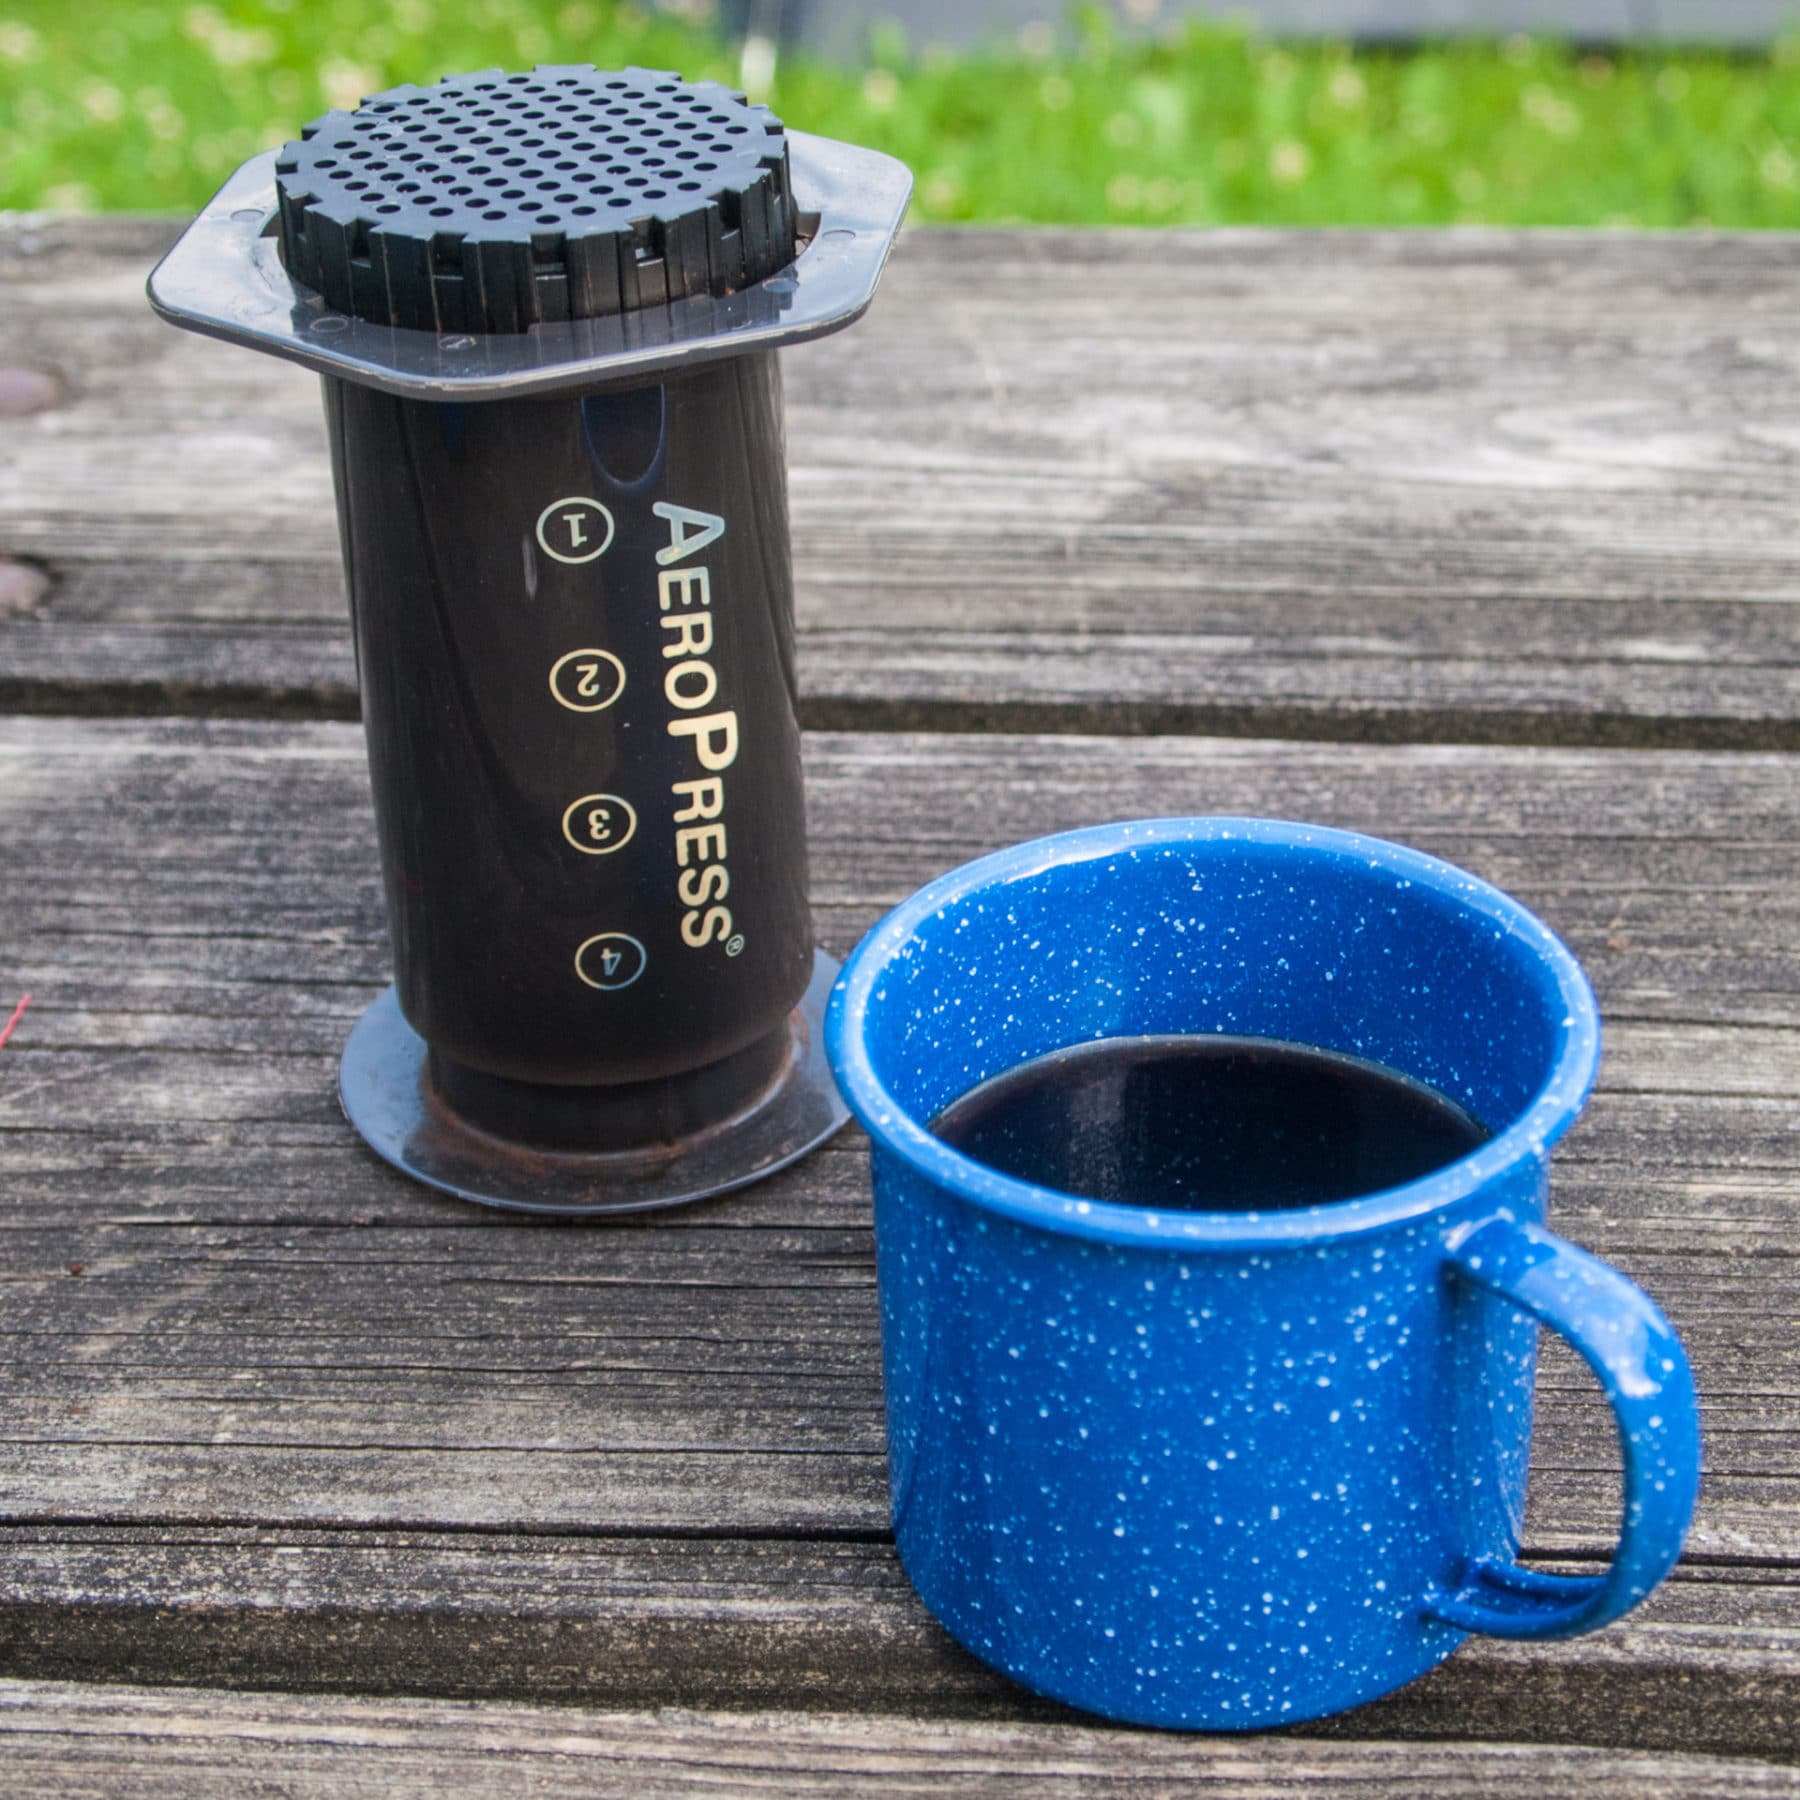 Why the Aeropress is the best campsite coffee maker you can buy